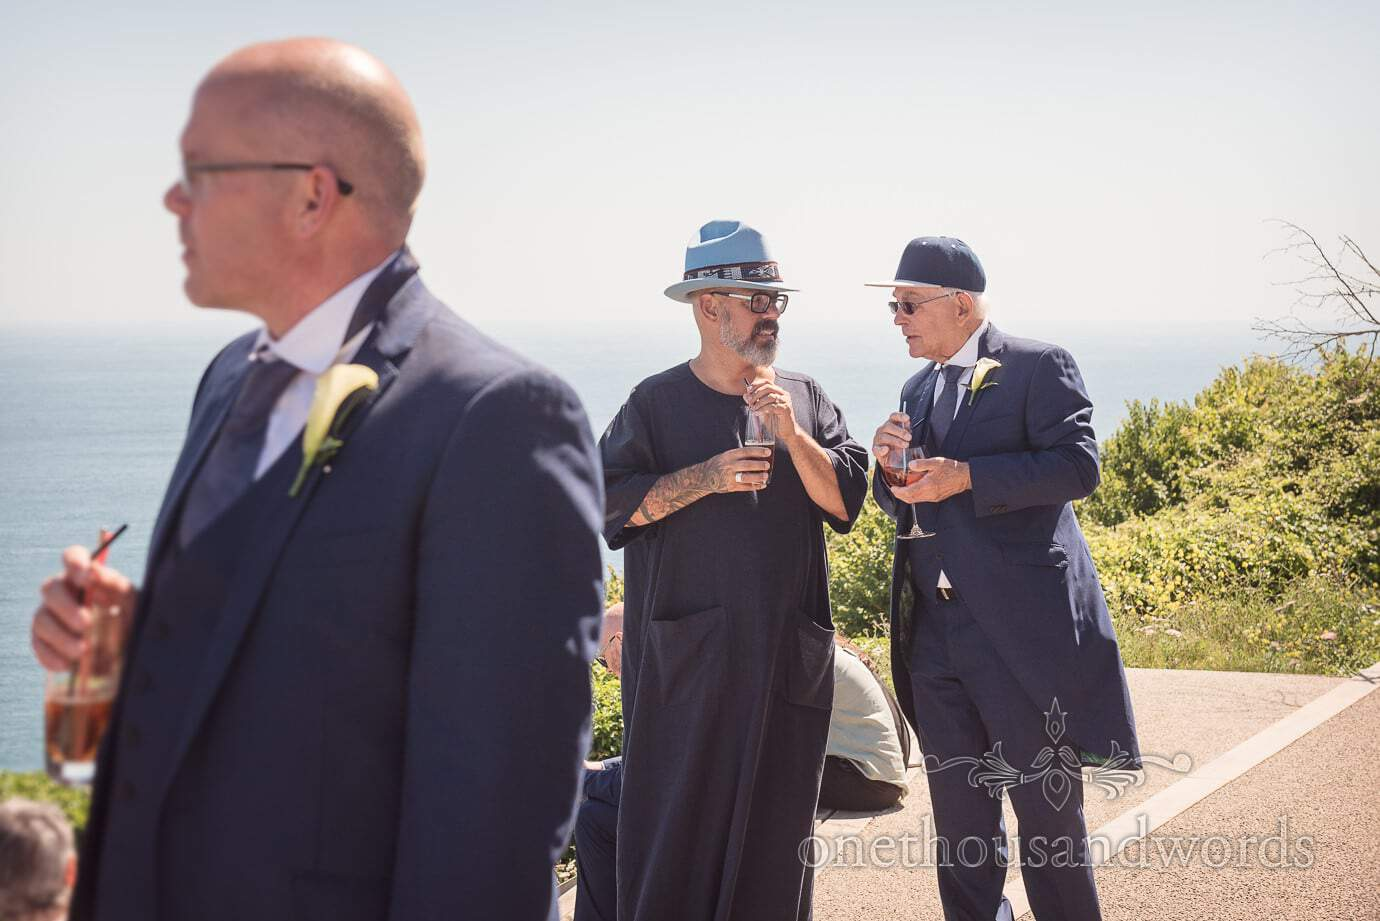 Father of the groom in baseball cap talks to wedding guest in big blue hat at drinks reception